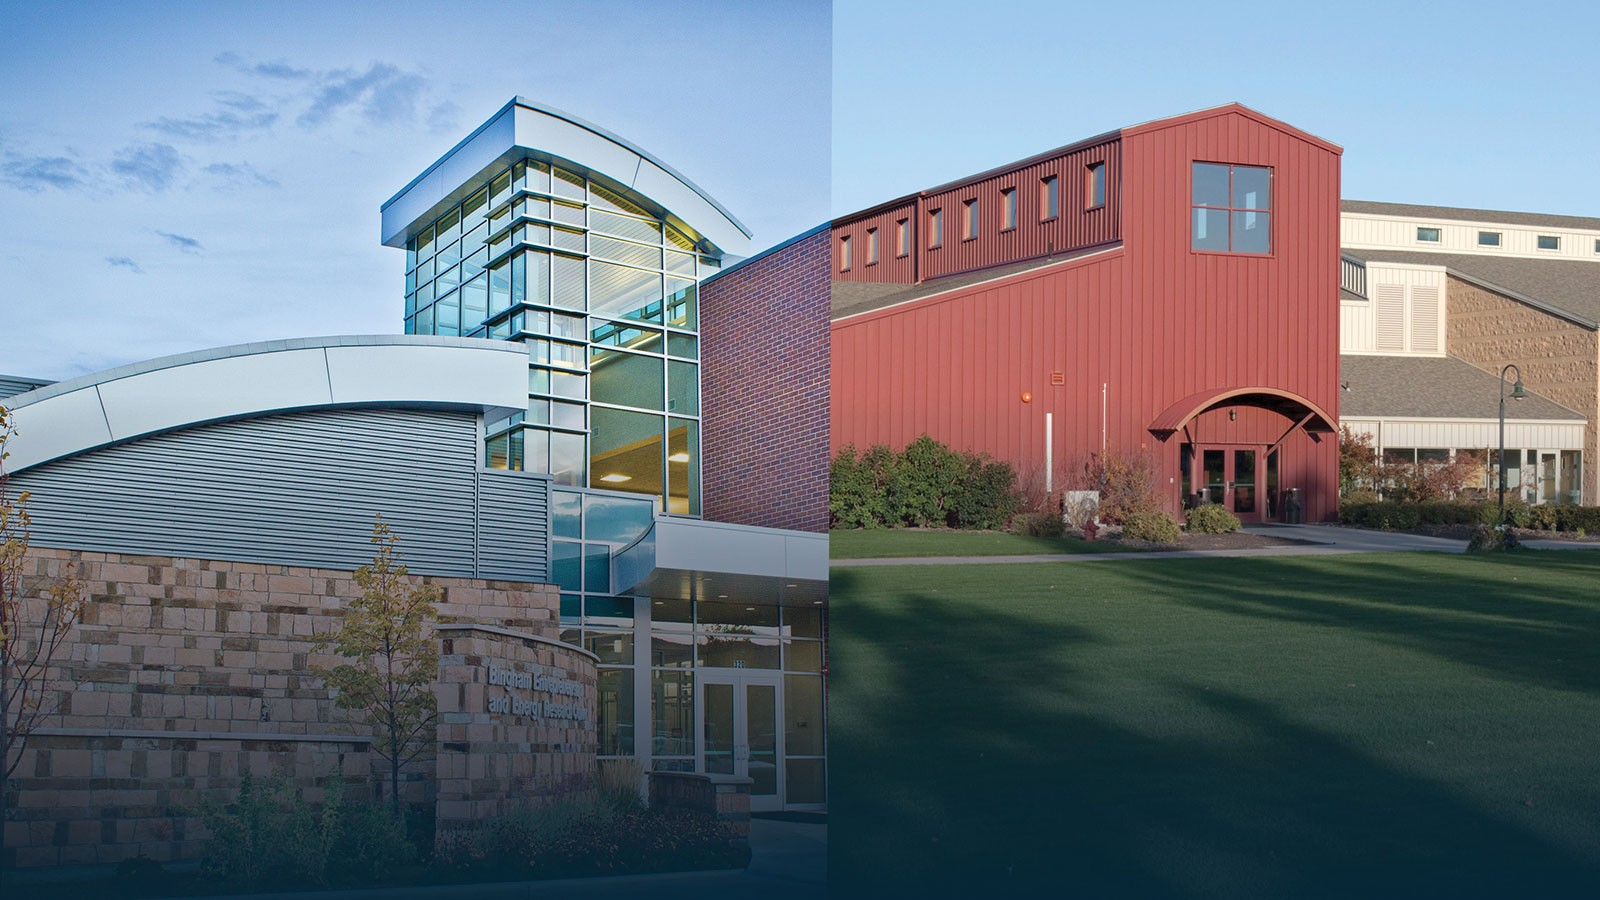 USU's Uintah Basin campuses - Vernal and Roosevelt